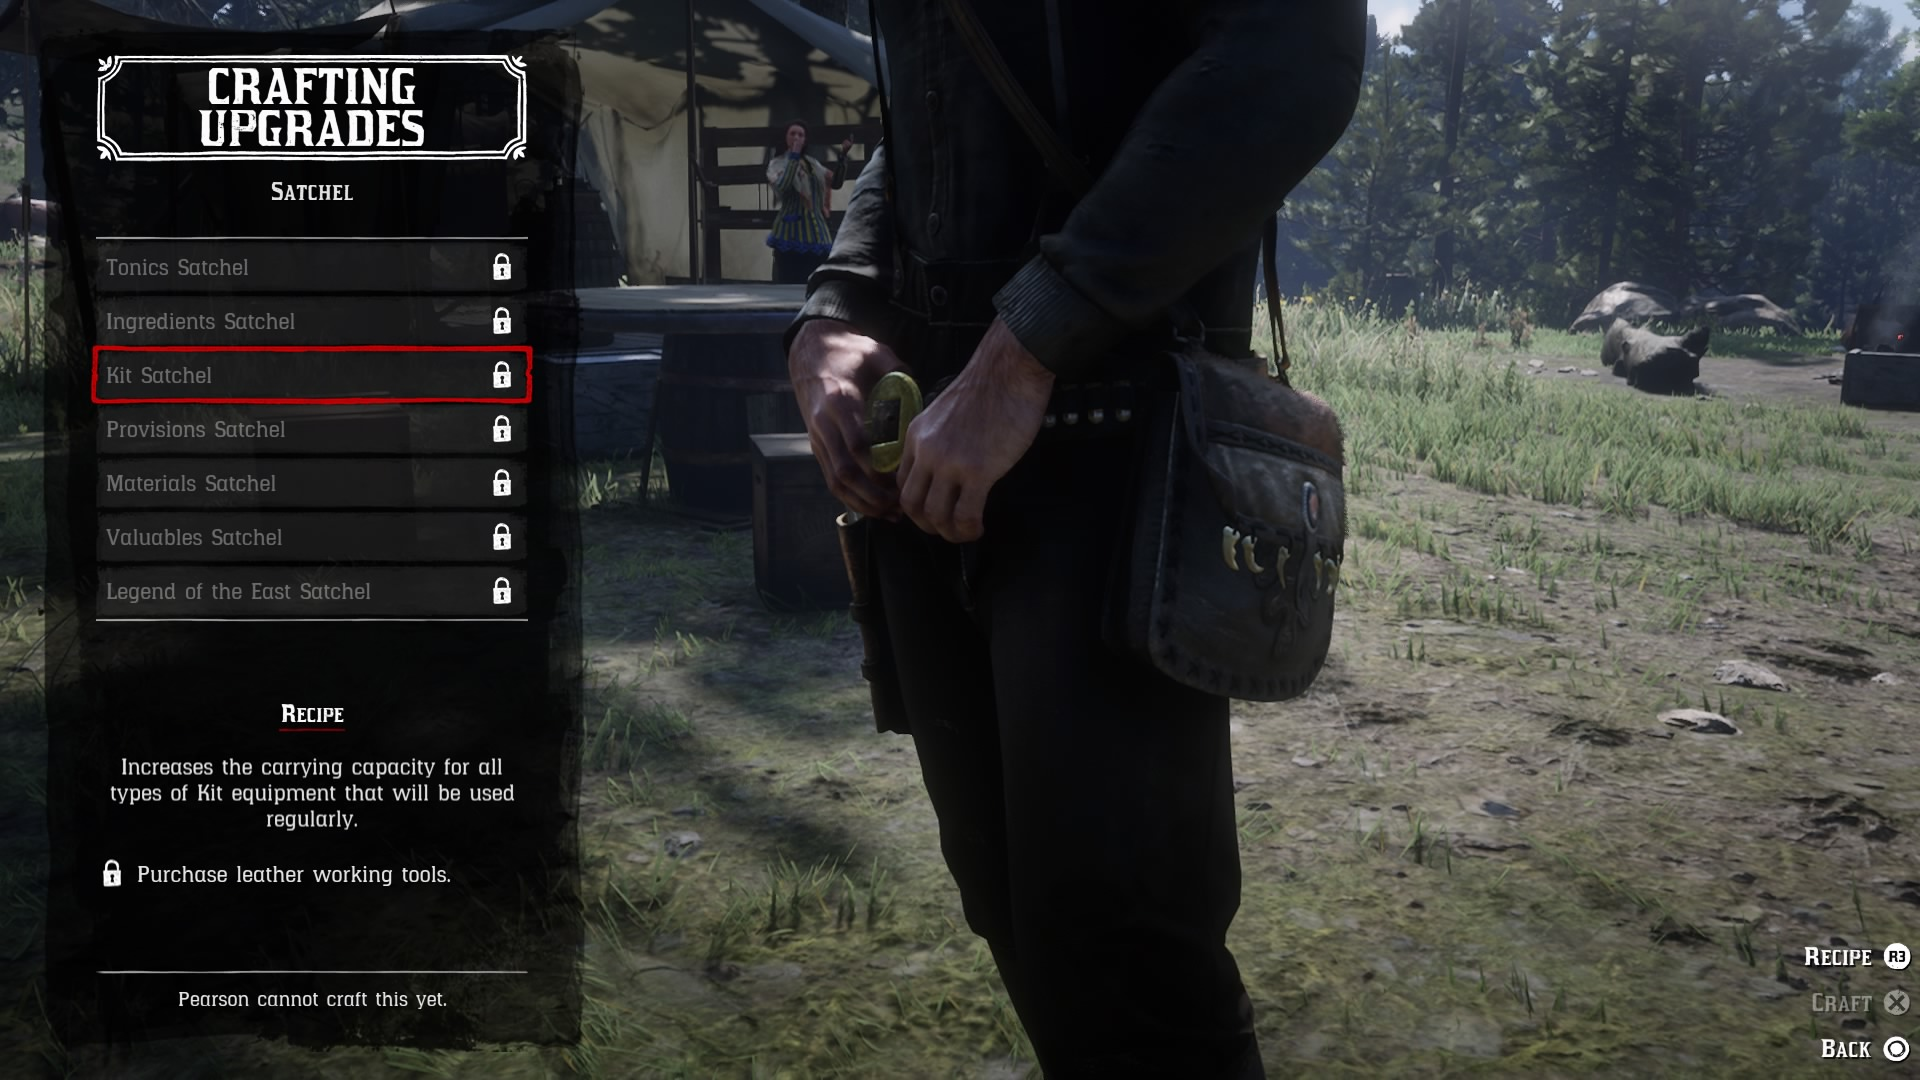 Red Dead Redemption 2 Satchel Crafting Guide